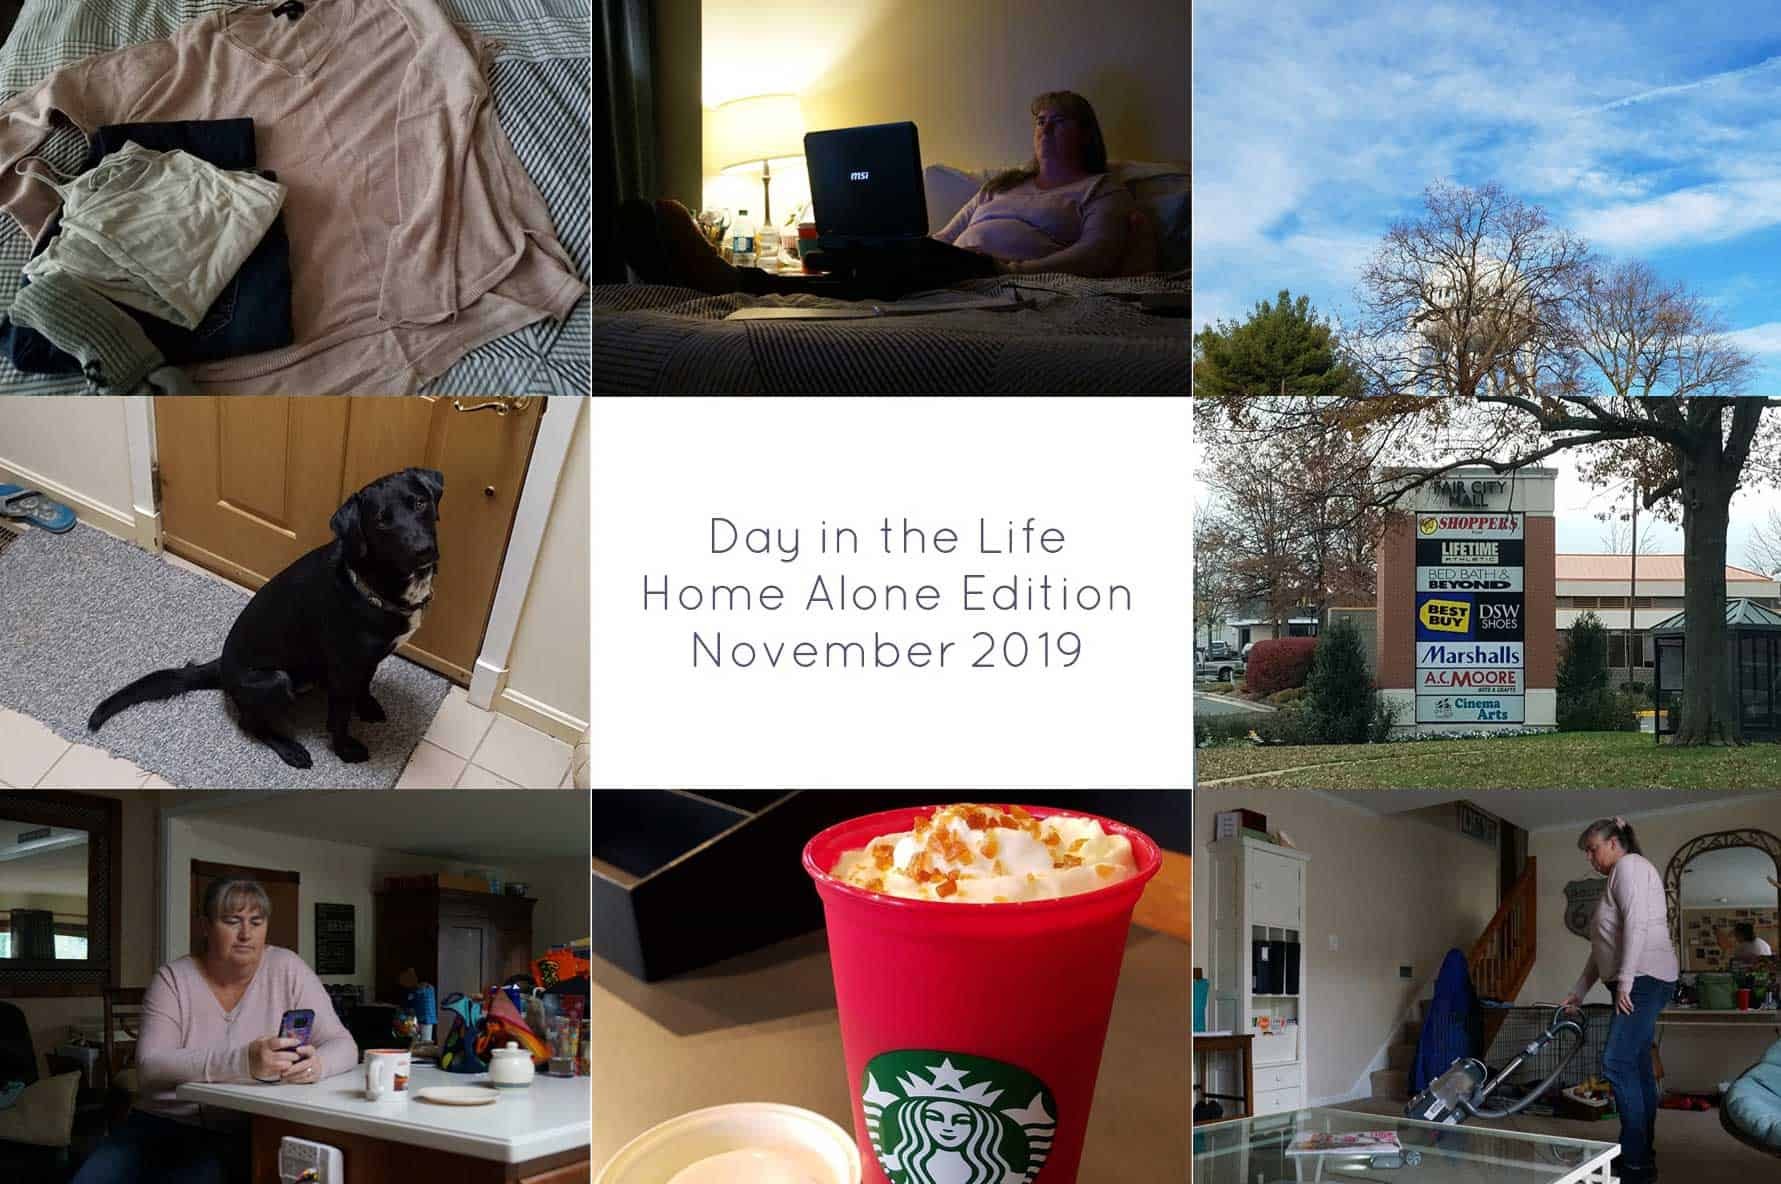 Day in the Life November 2019 via @behindeveryday